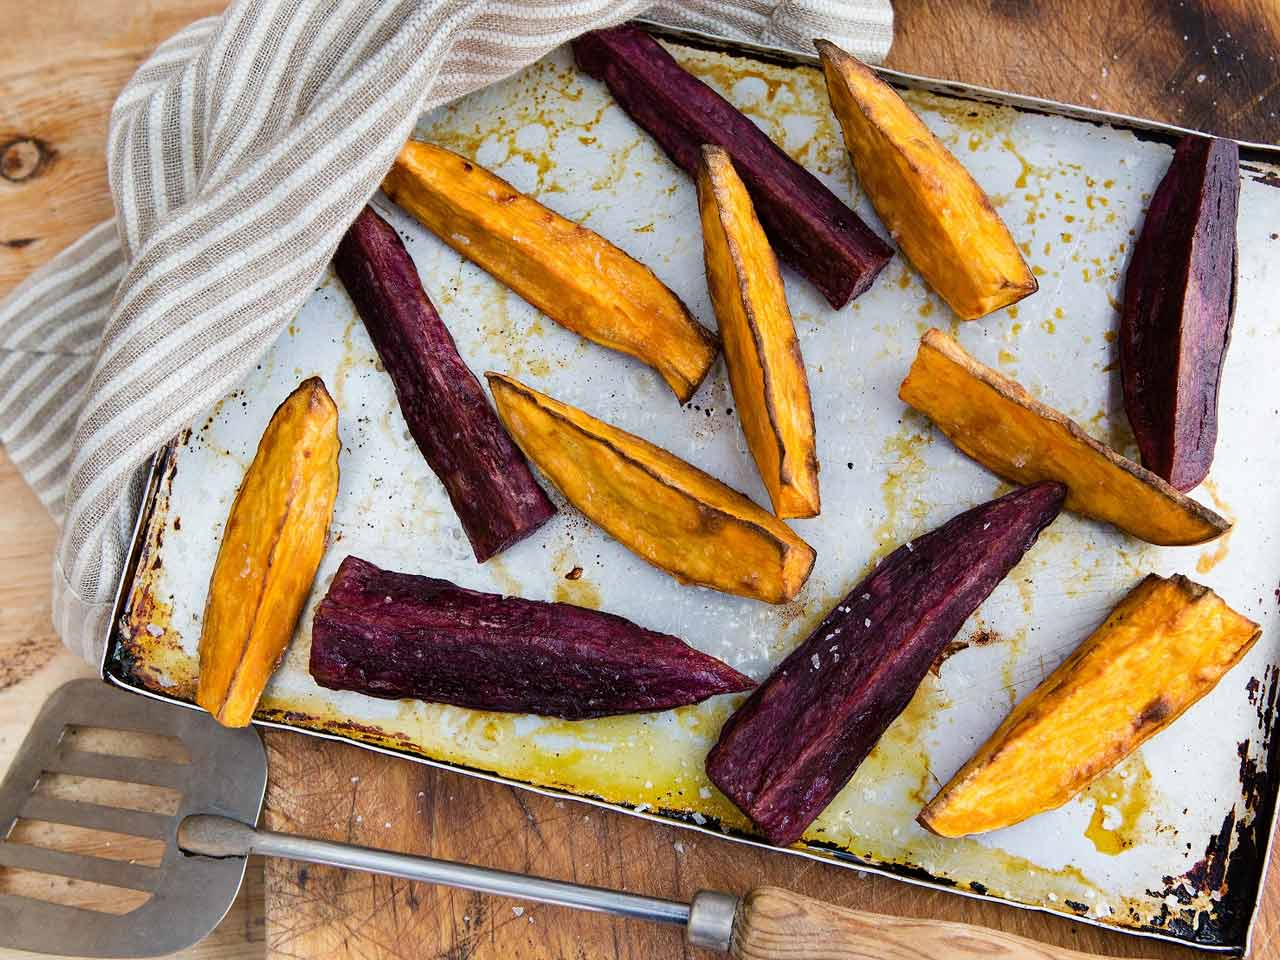 Cooked sweet potatoes